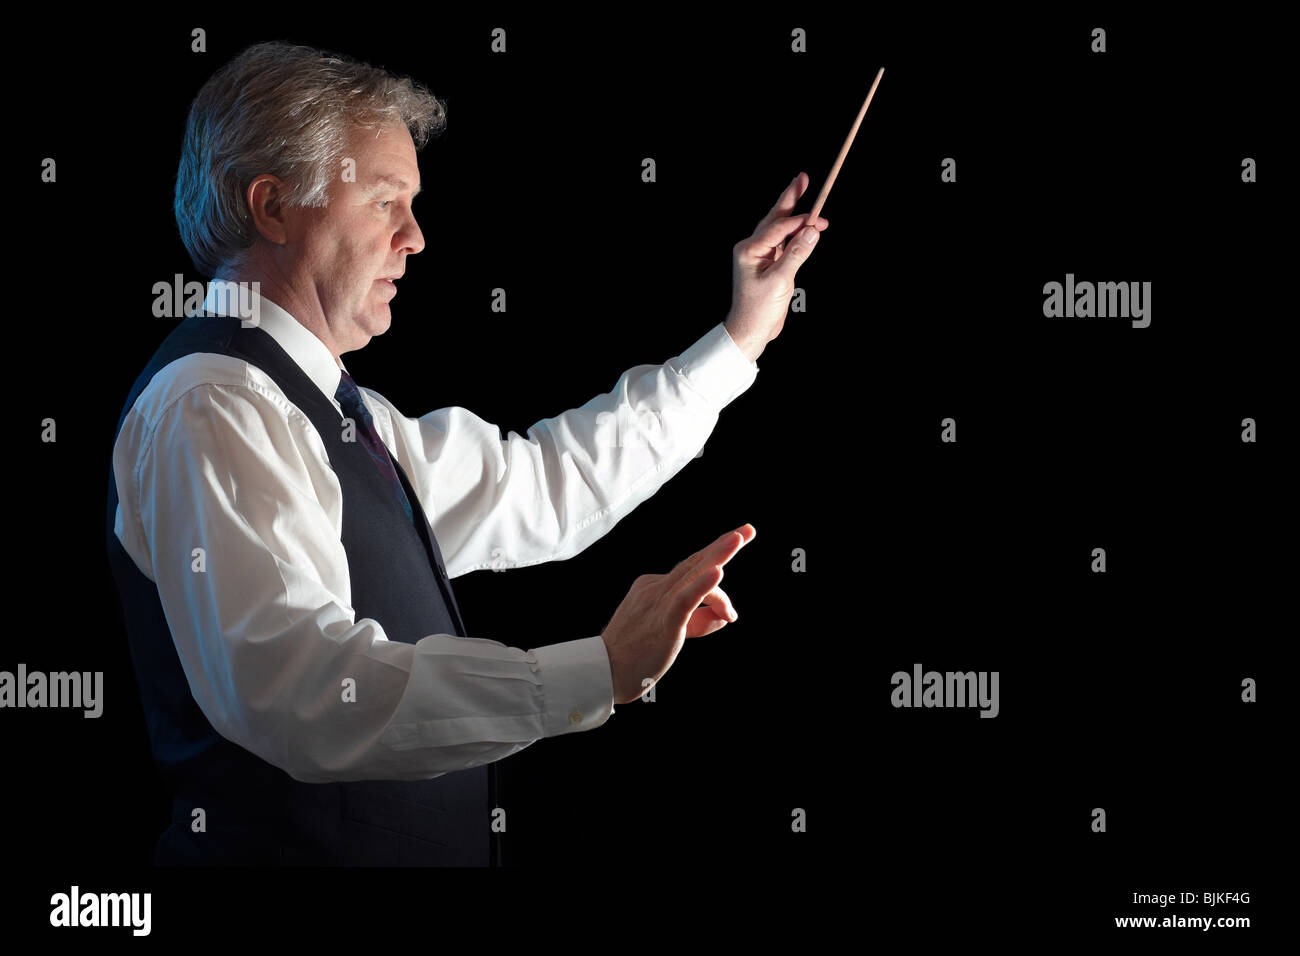 Business man conducting his work and business - Stock Image